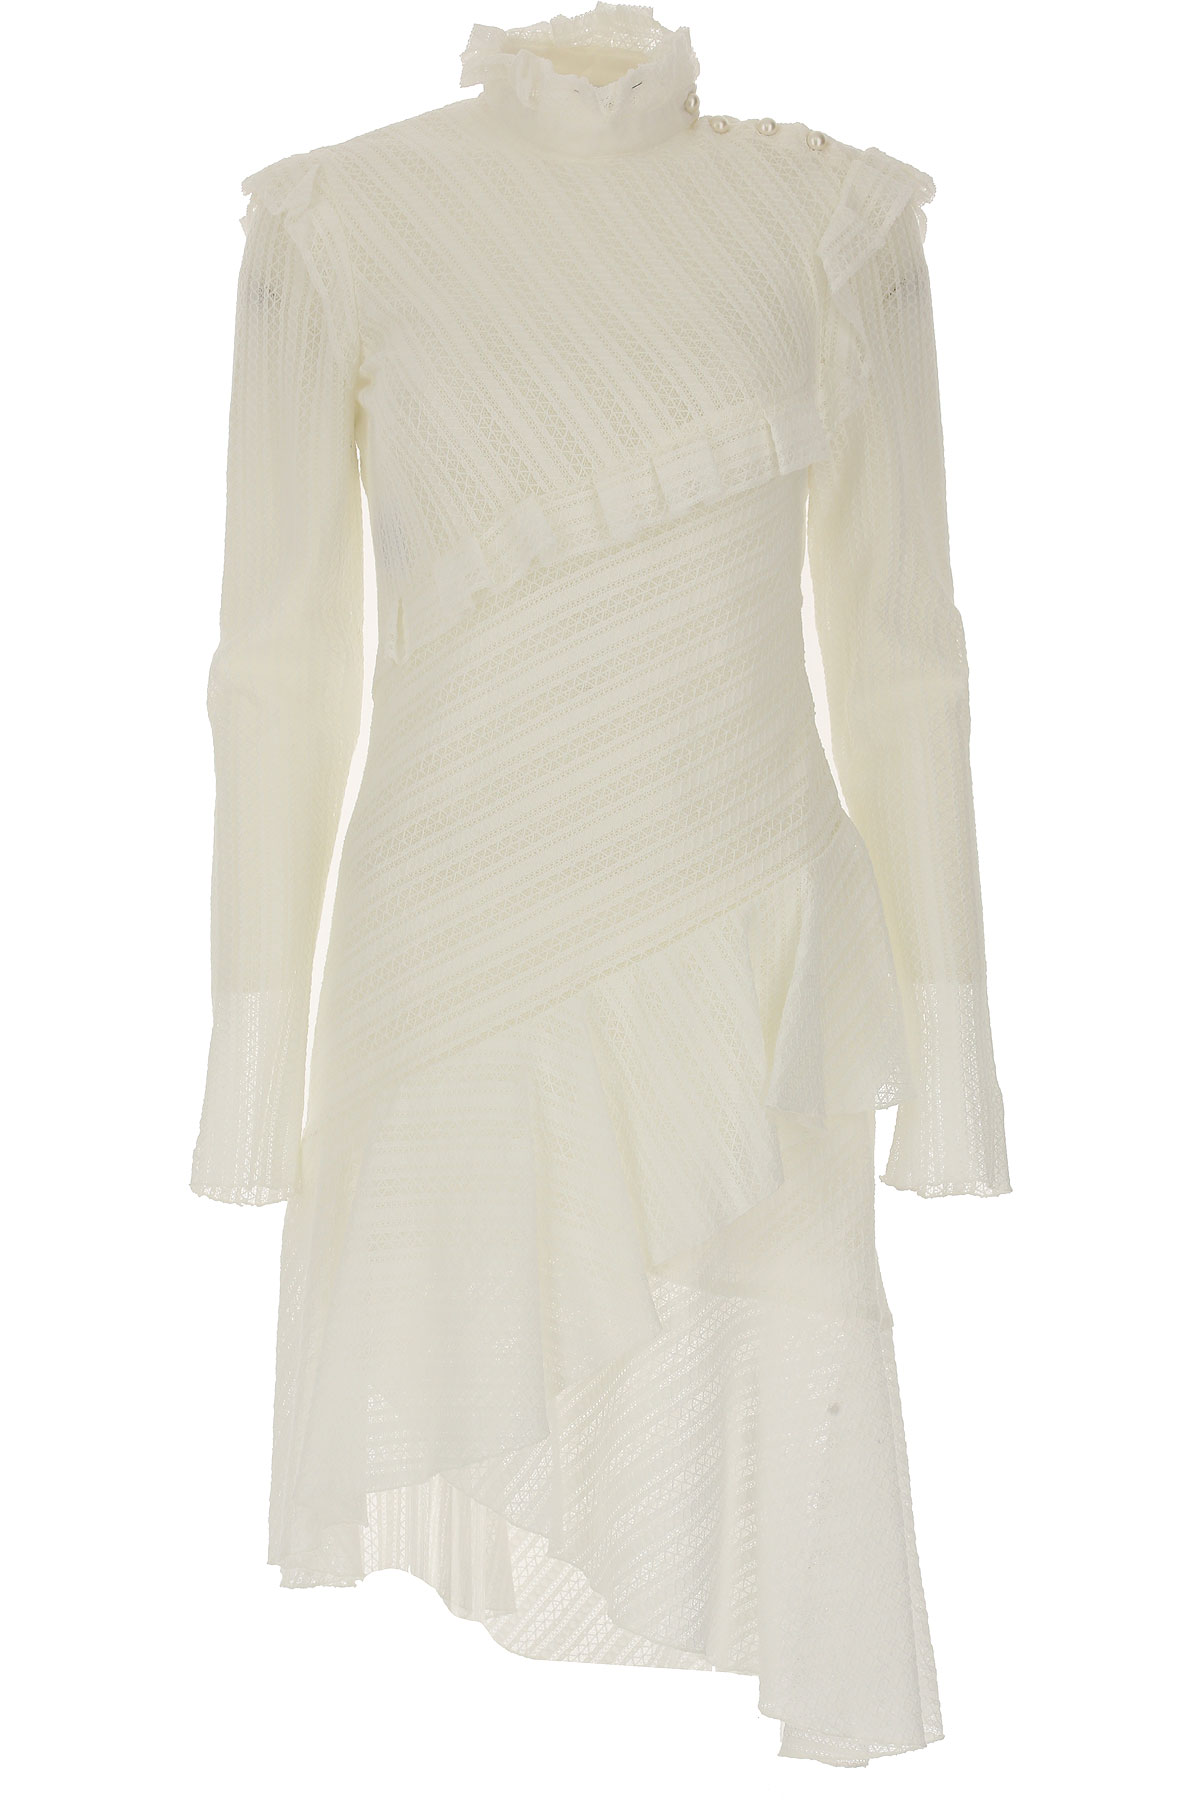 Image of Philosophy di Lorenzo Serafini Dress for Women, Evening Cocktail Party, White, Cotton, 2017, 4 6